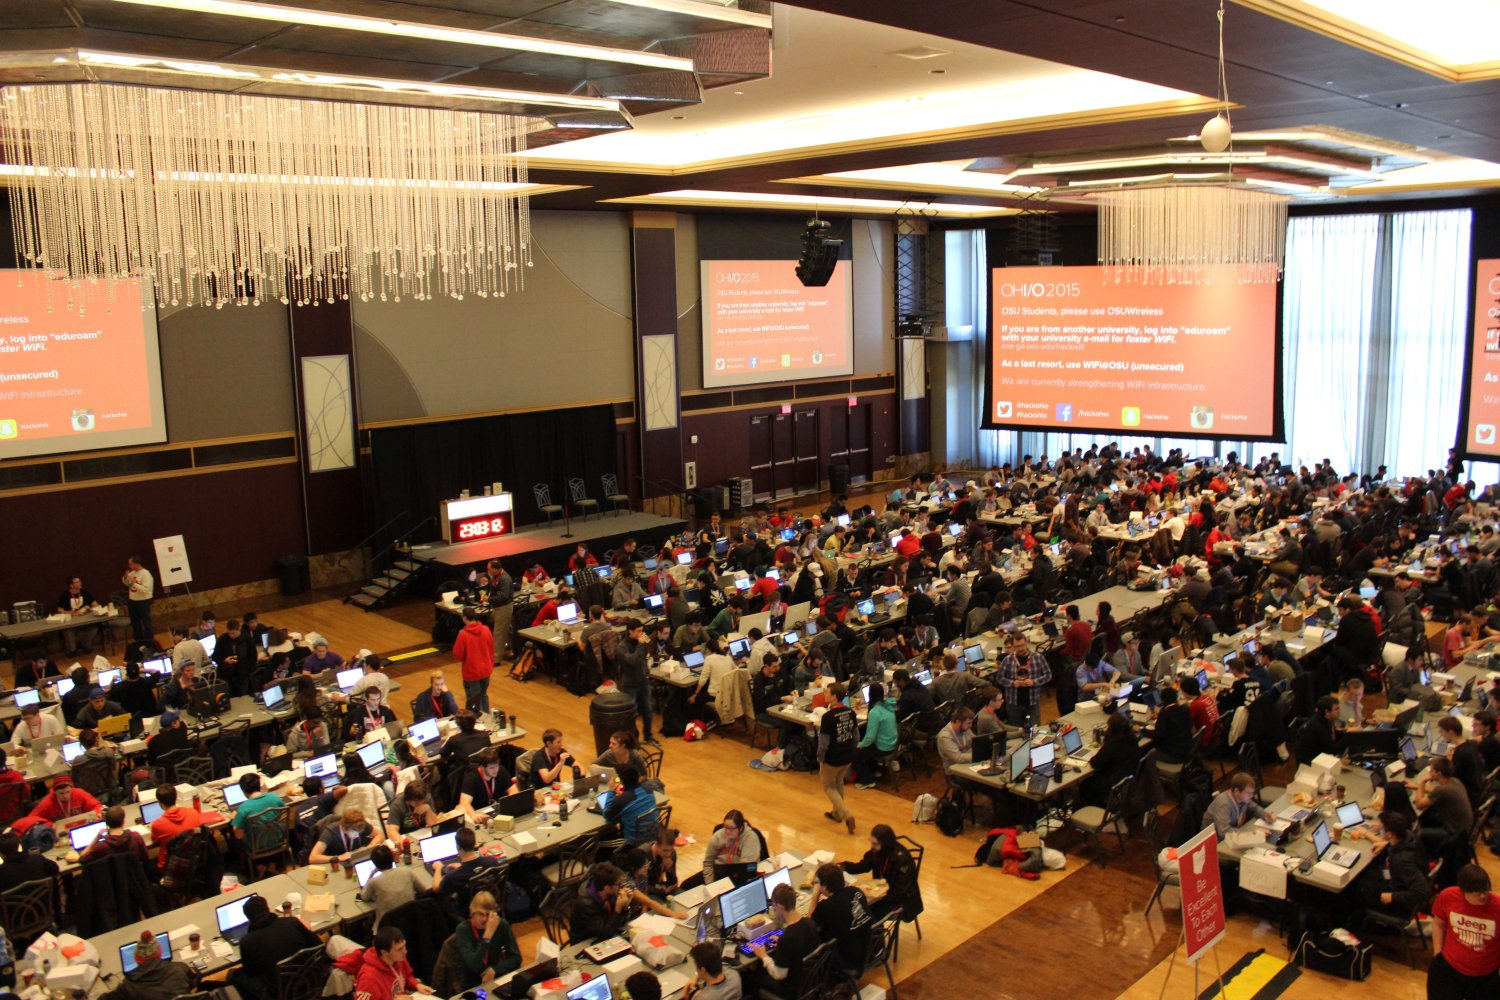 Overlooking OHI/O 2015 participants in the Grand Ballroom of the Ohio Union.